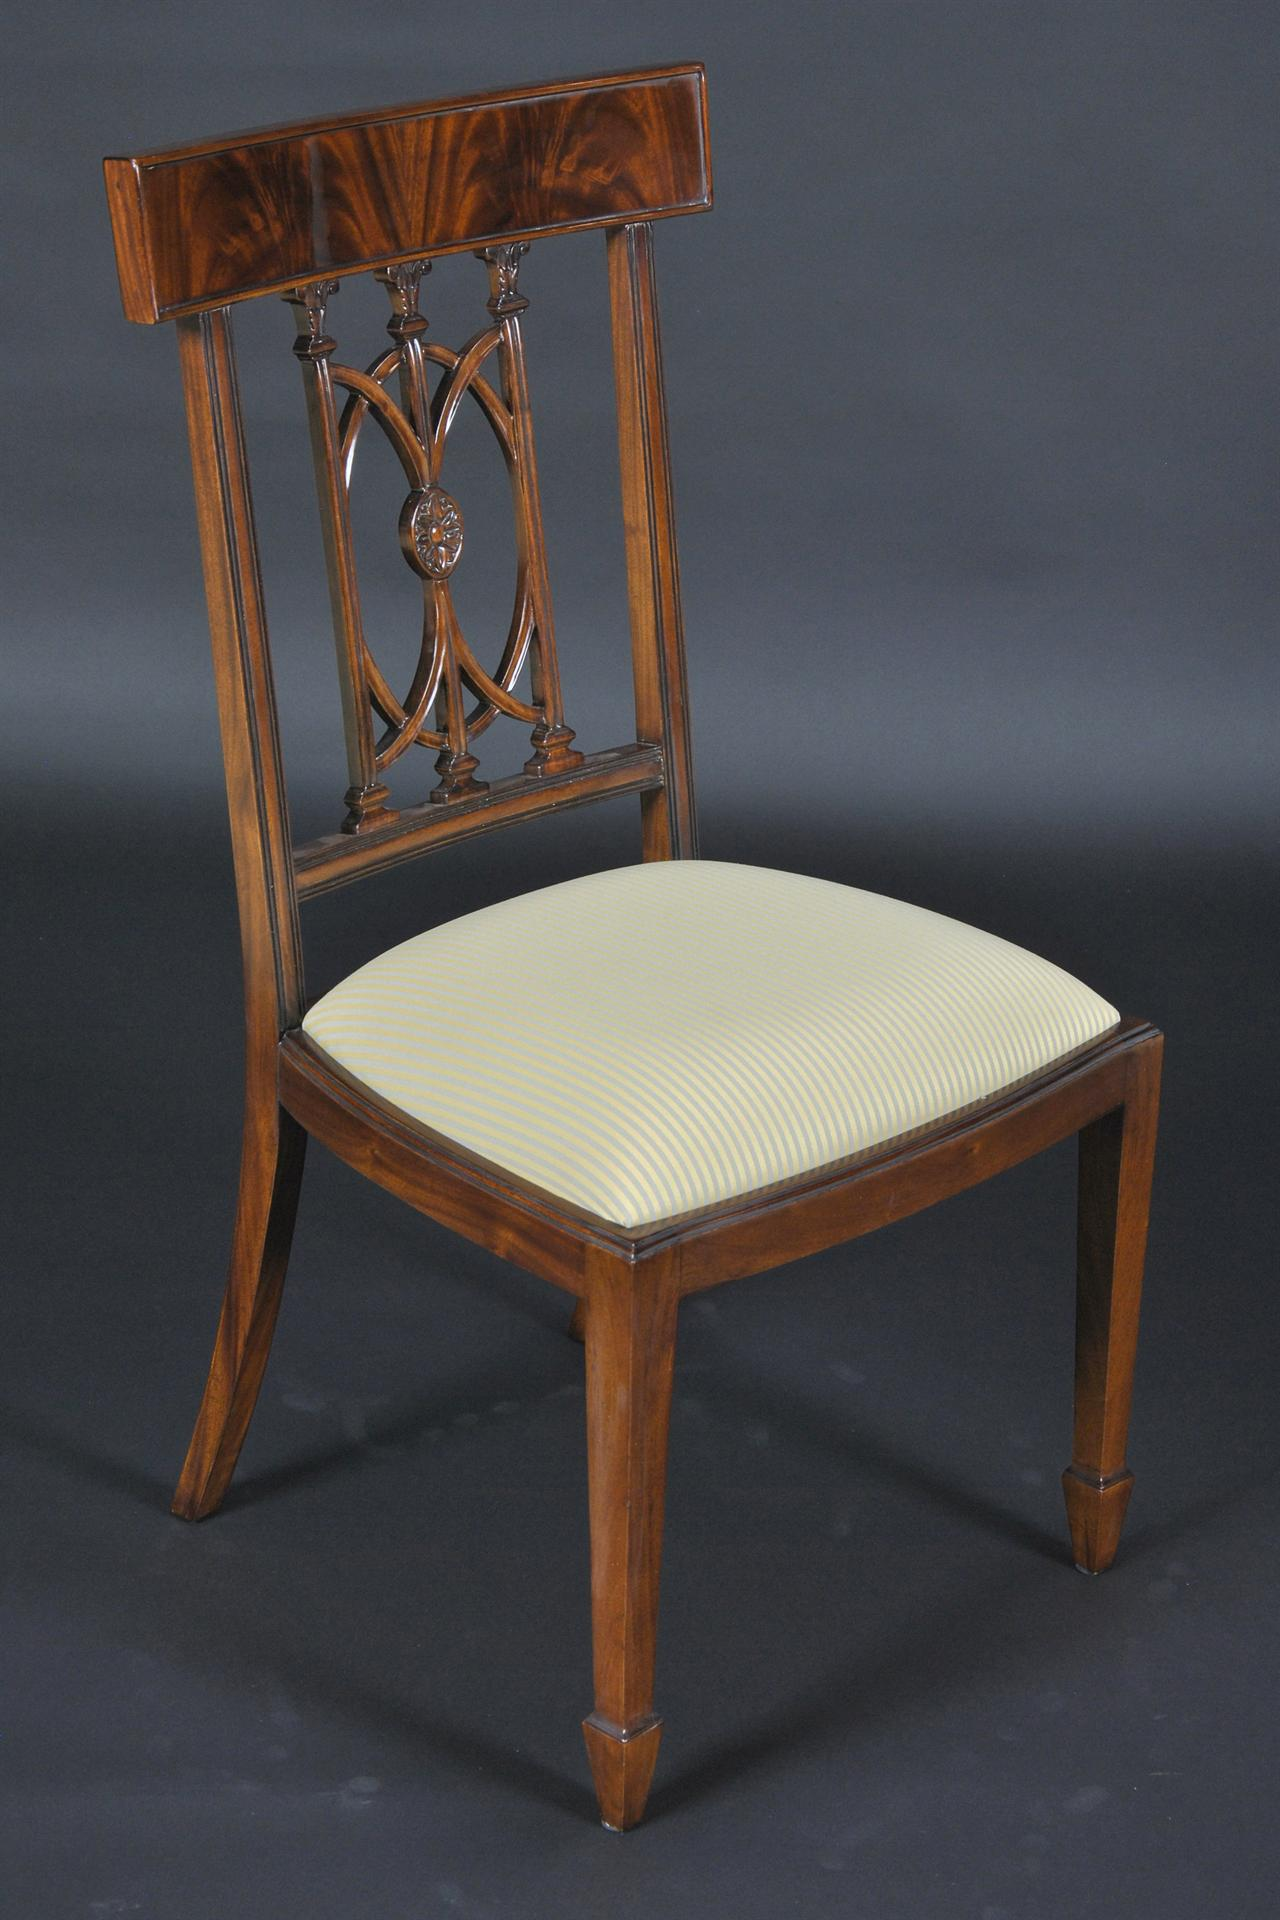 Hepplewhite Chairs with Swirl Mahogany Crest Rail